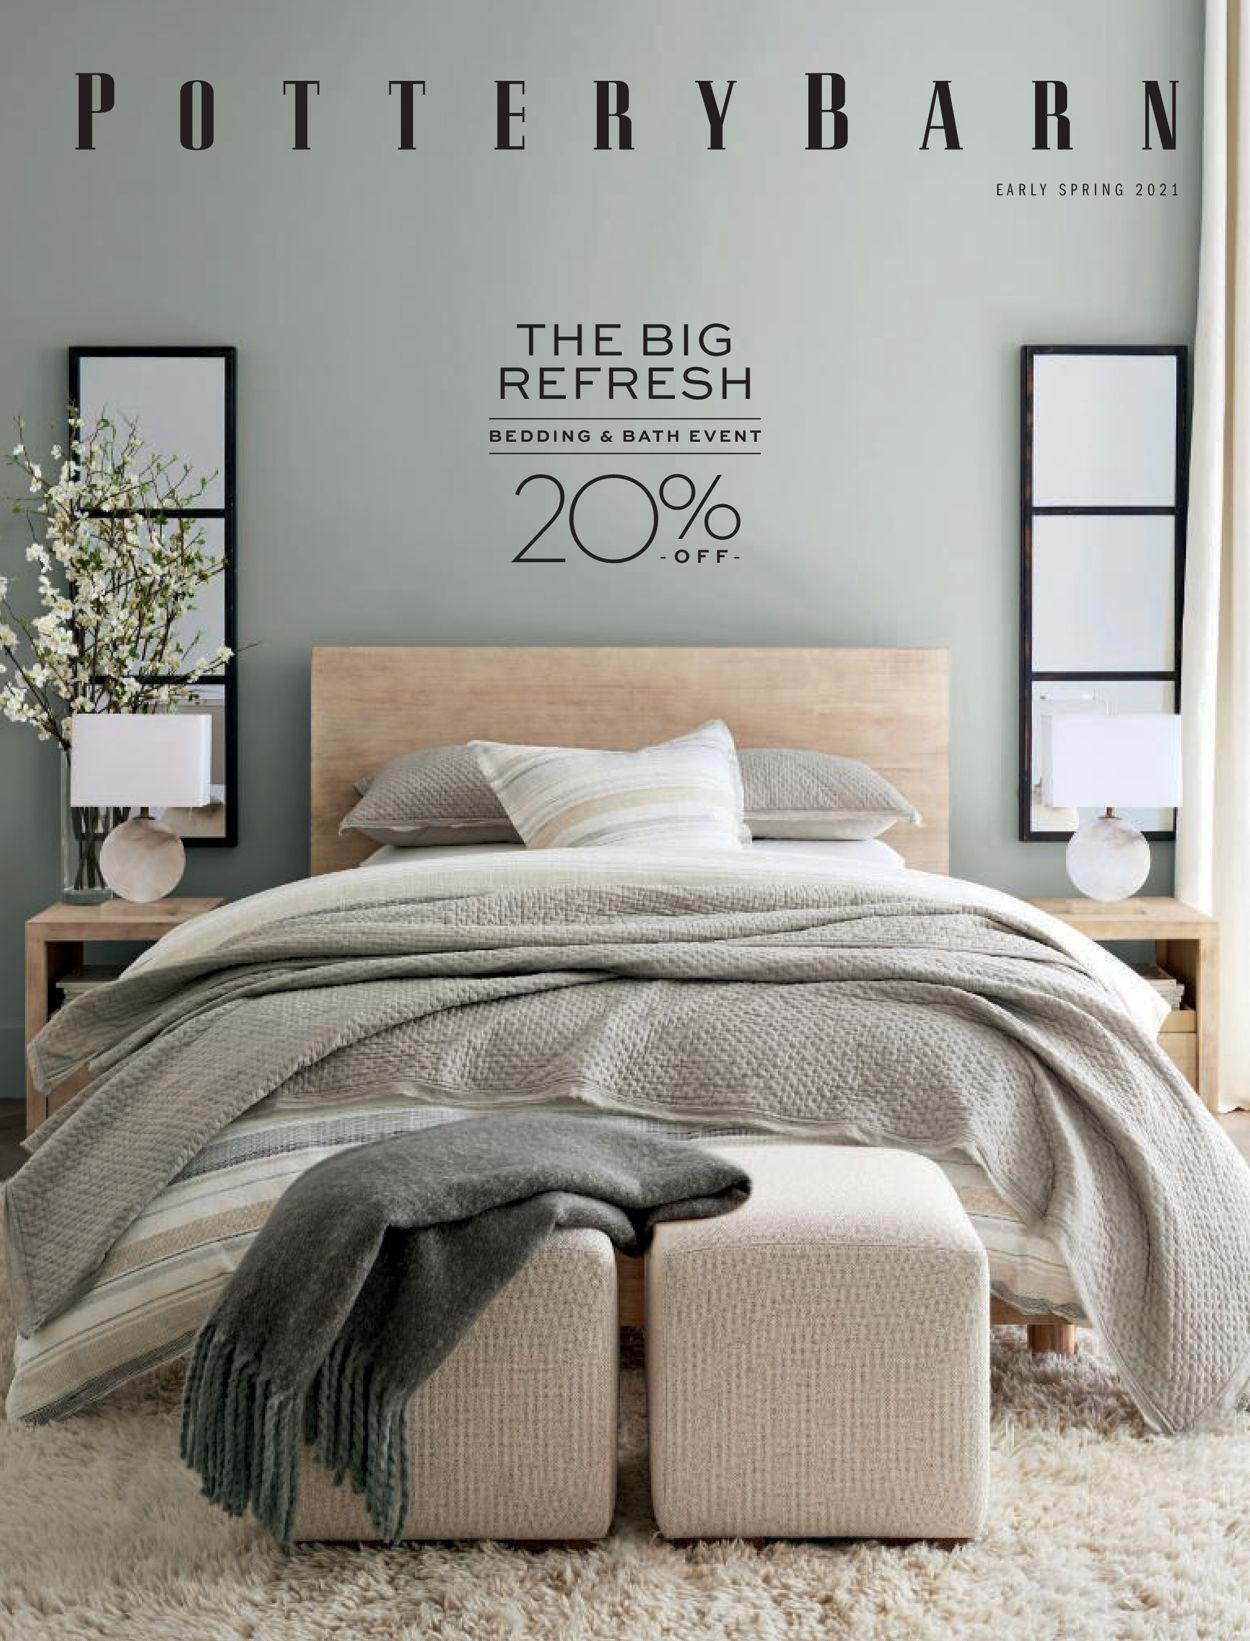 Pottery Barn weekly-ad